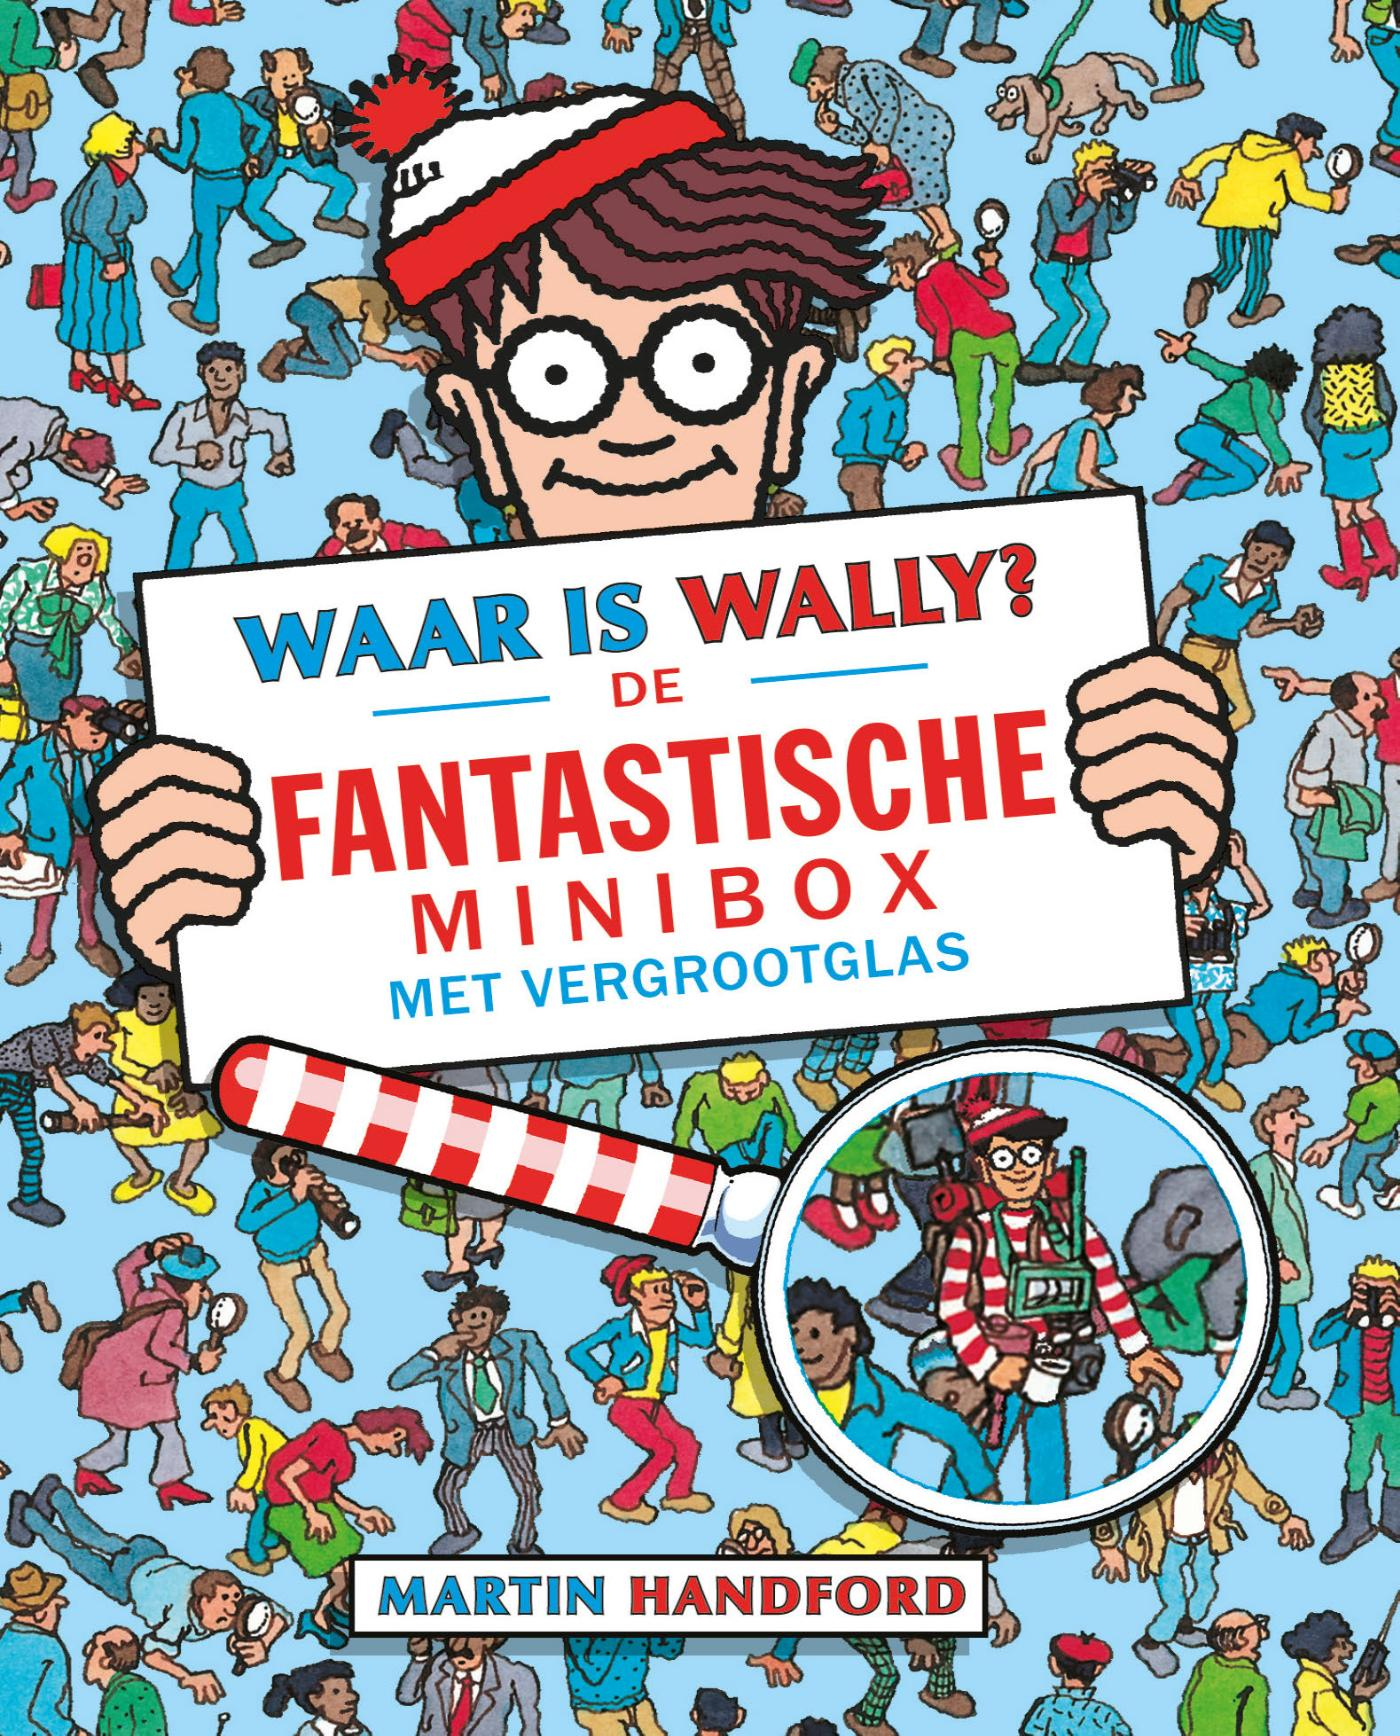 Waar is Wally De fantastische minibox met vergrootglas